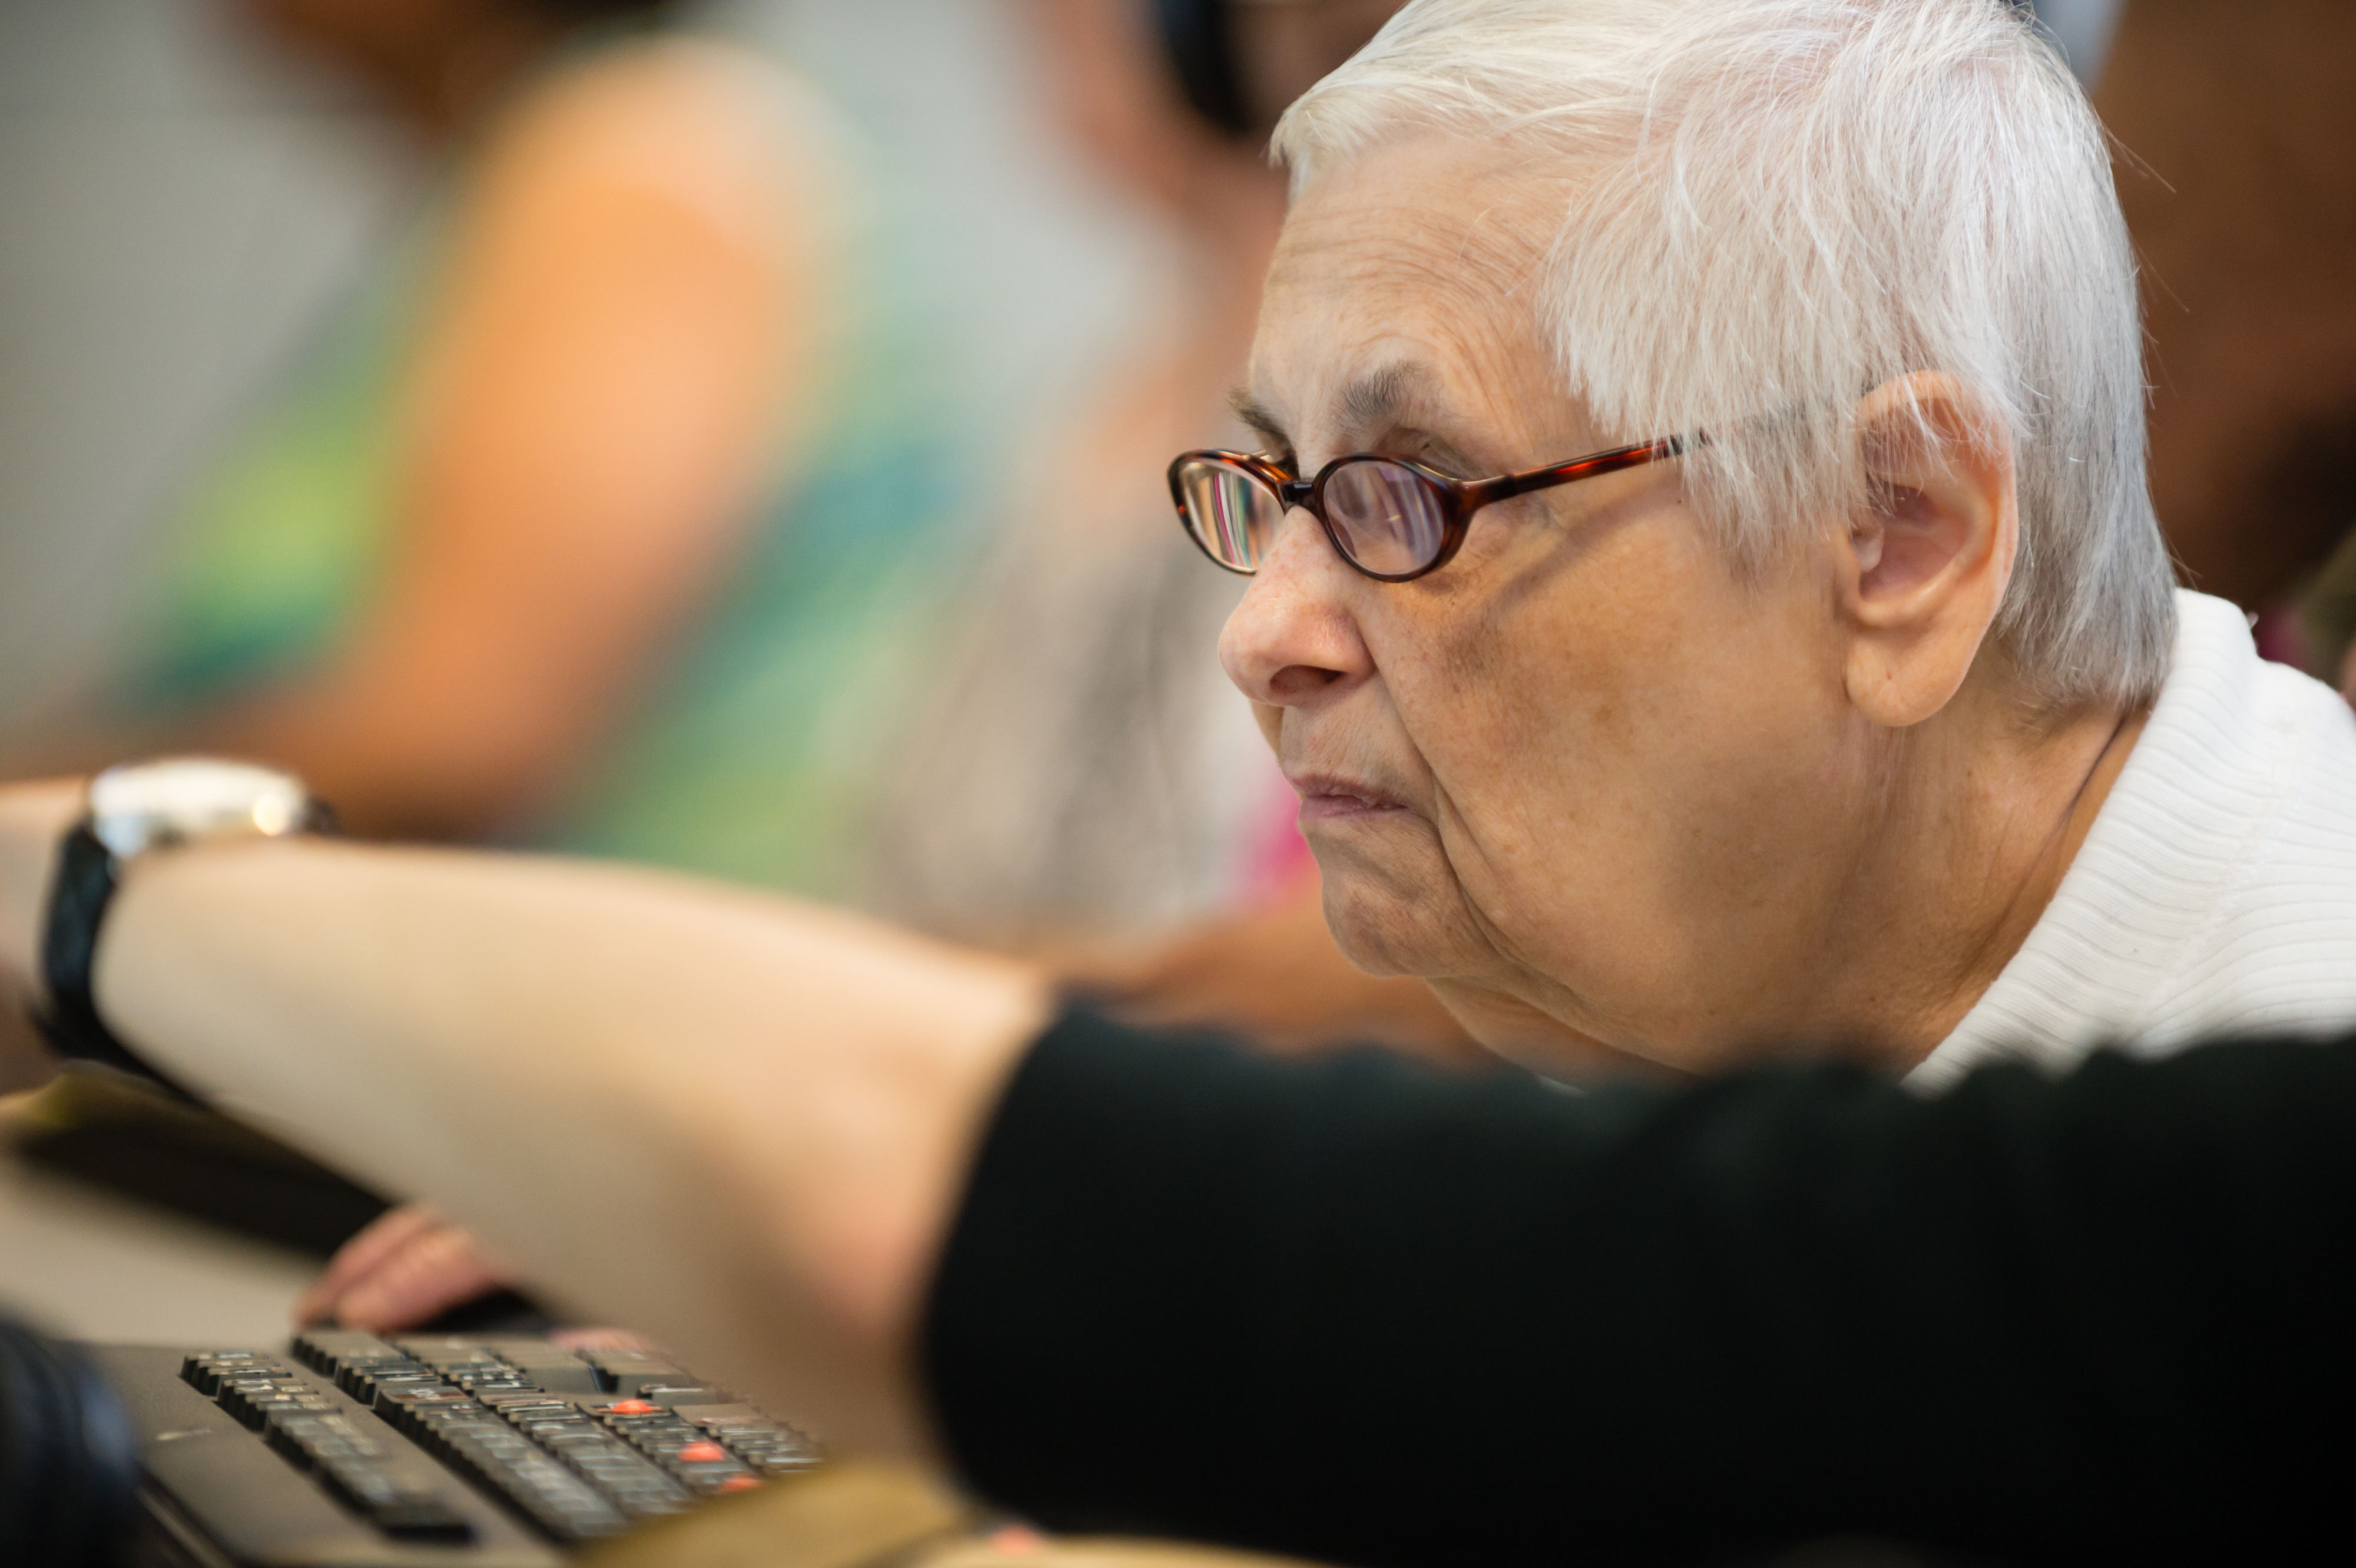 Member of Seniors Program learning computer skills